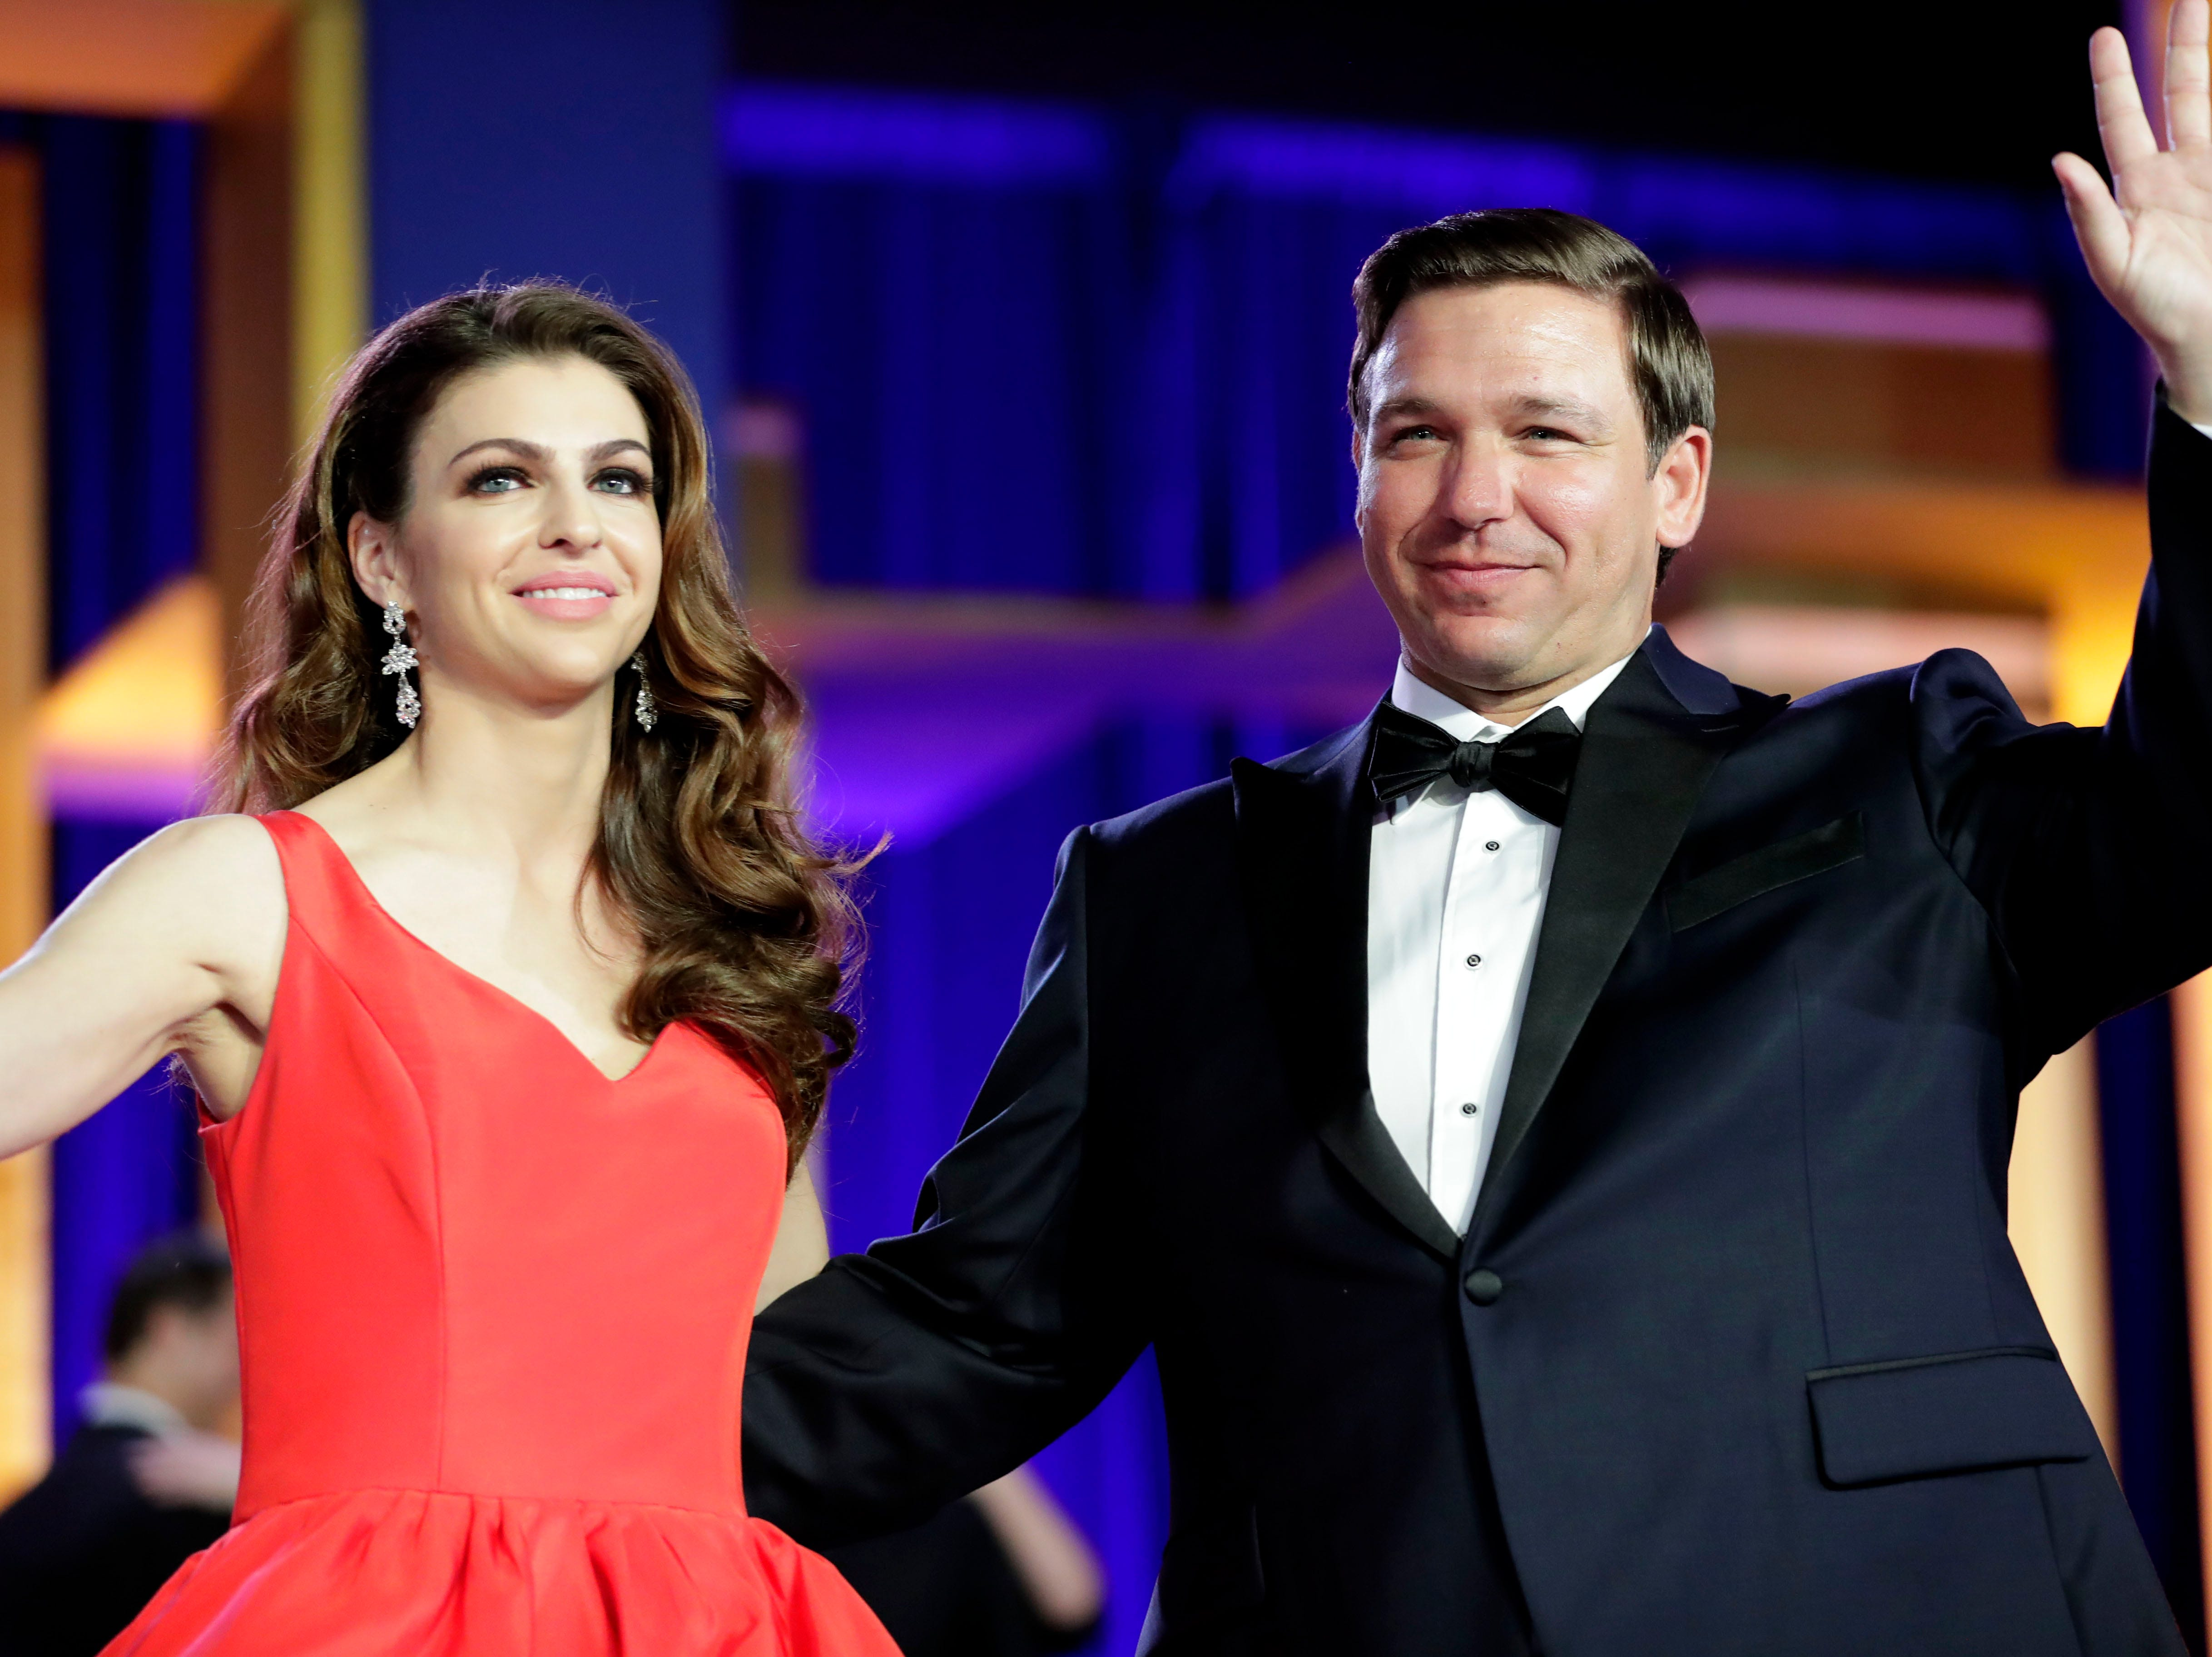 Hundreds of guests from all over Florida attend Florida's 46th Governor's Inaugural Ball at the Tucker Civic Center, Tuesday, Jan. 8, 2019. First lady Casey DeSantis and Gov. Ron DeSantis wave to the crowd after they finish dancing.